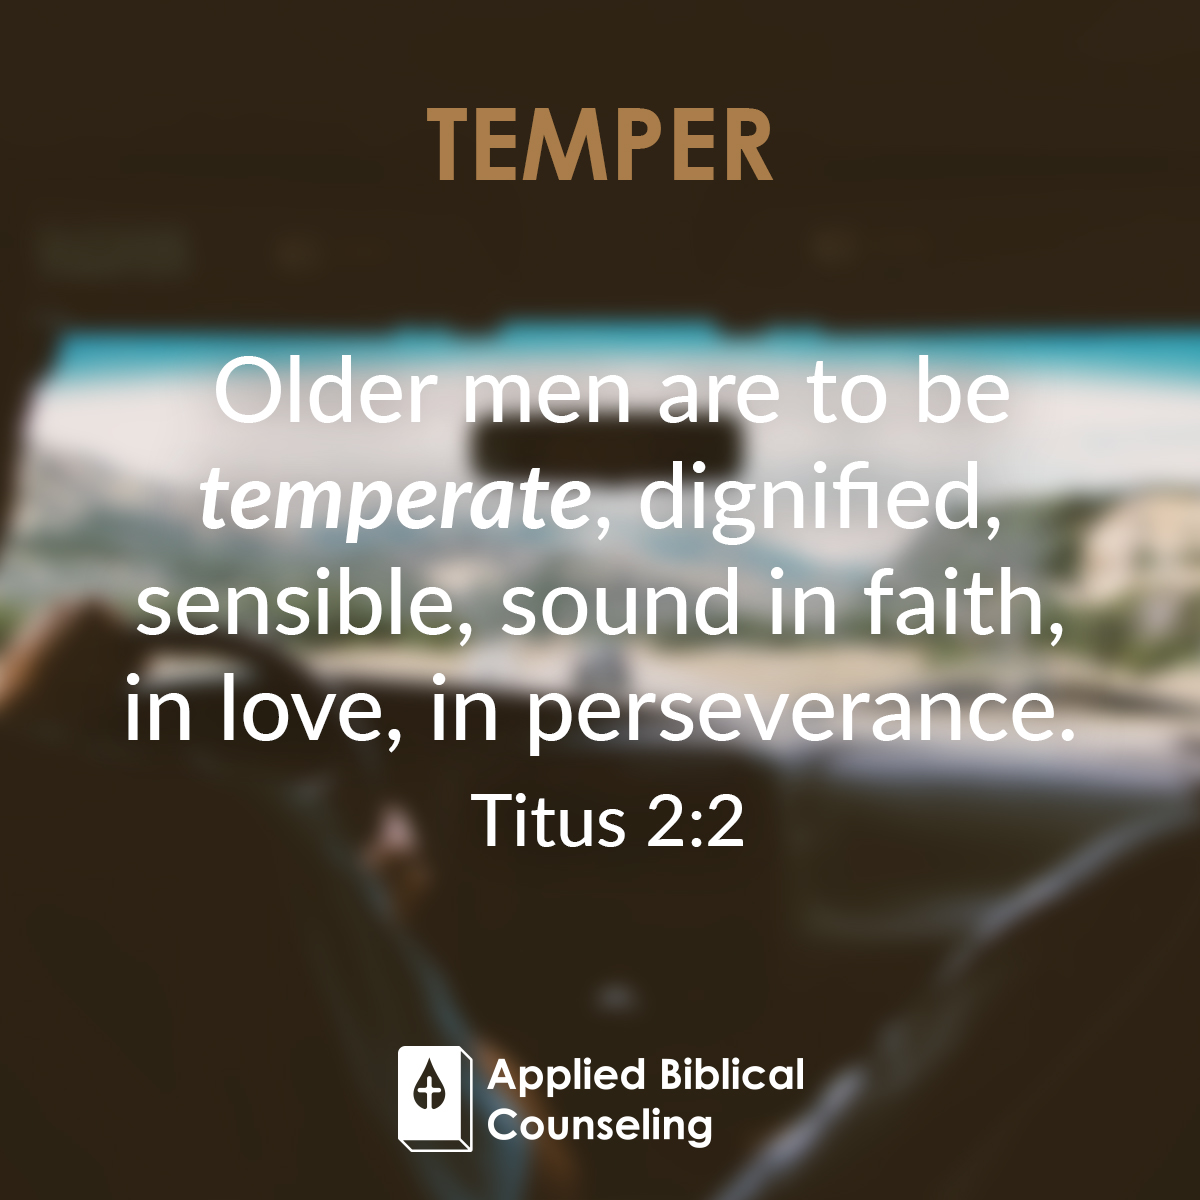 Temper Applied Biblical Counseling 5